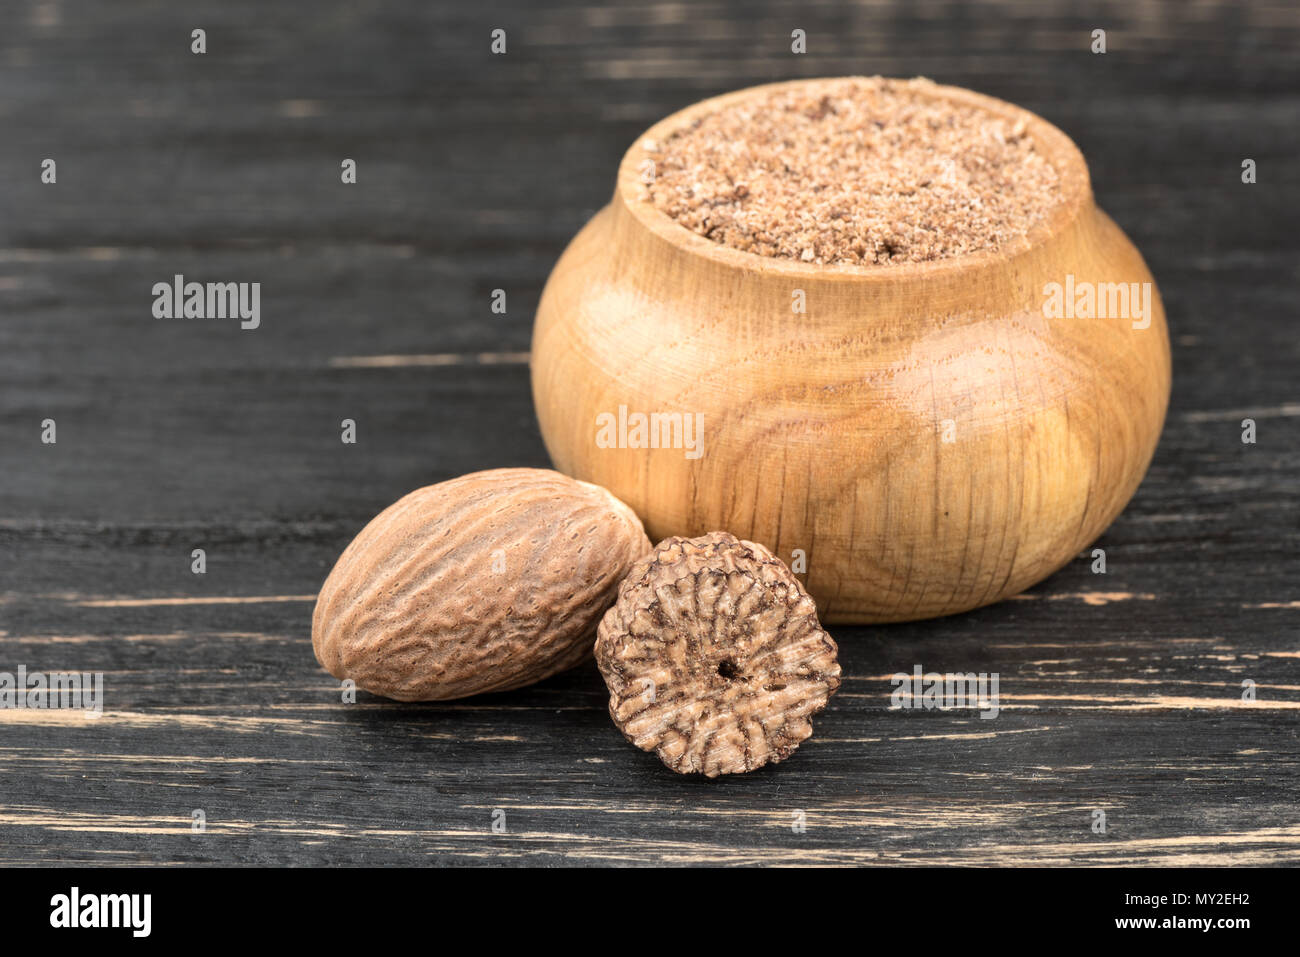 Jar with nutmeg powder and nuts on wooden background - Stock Image